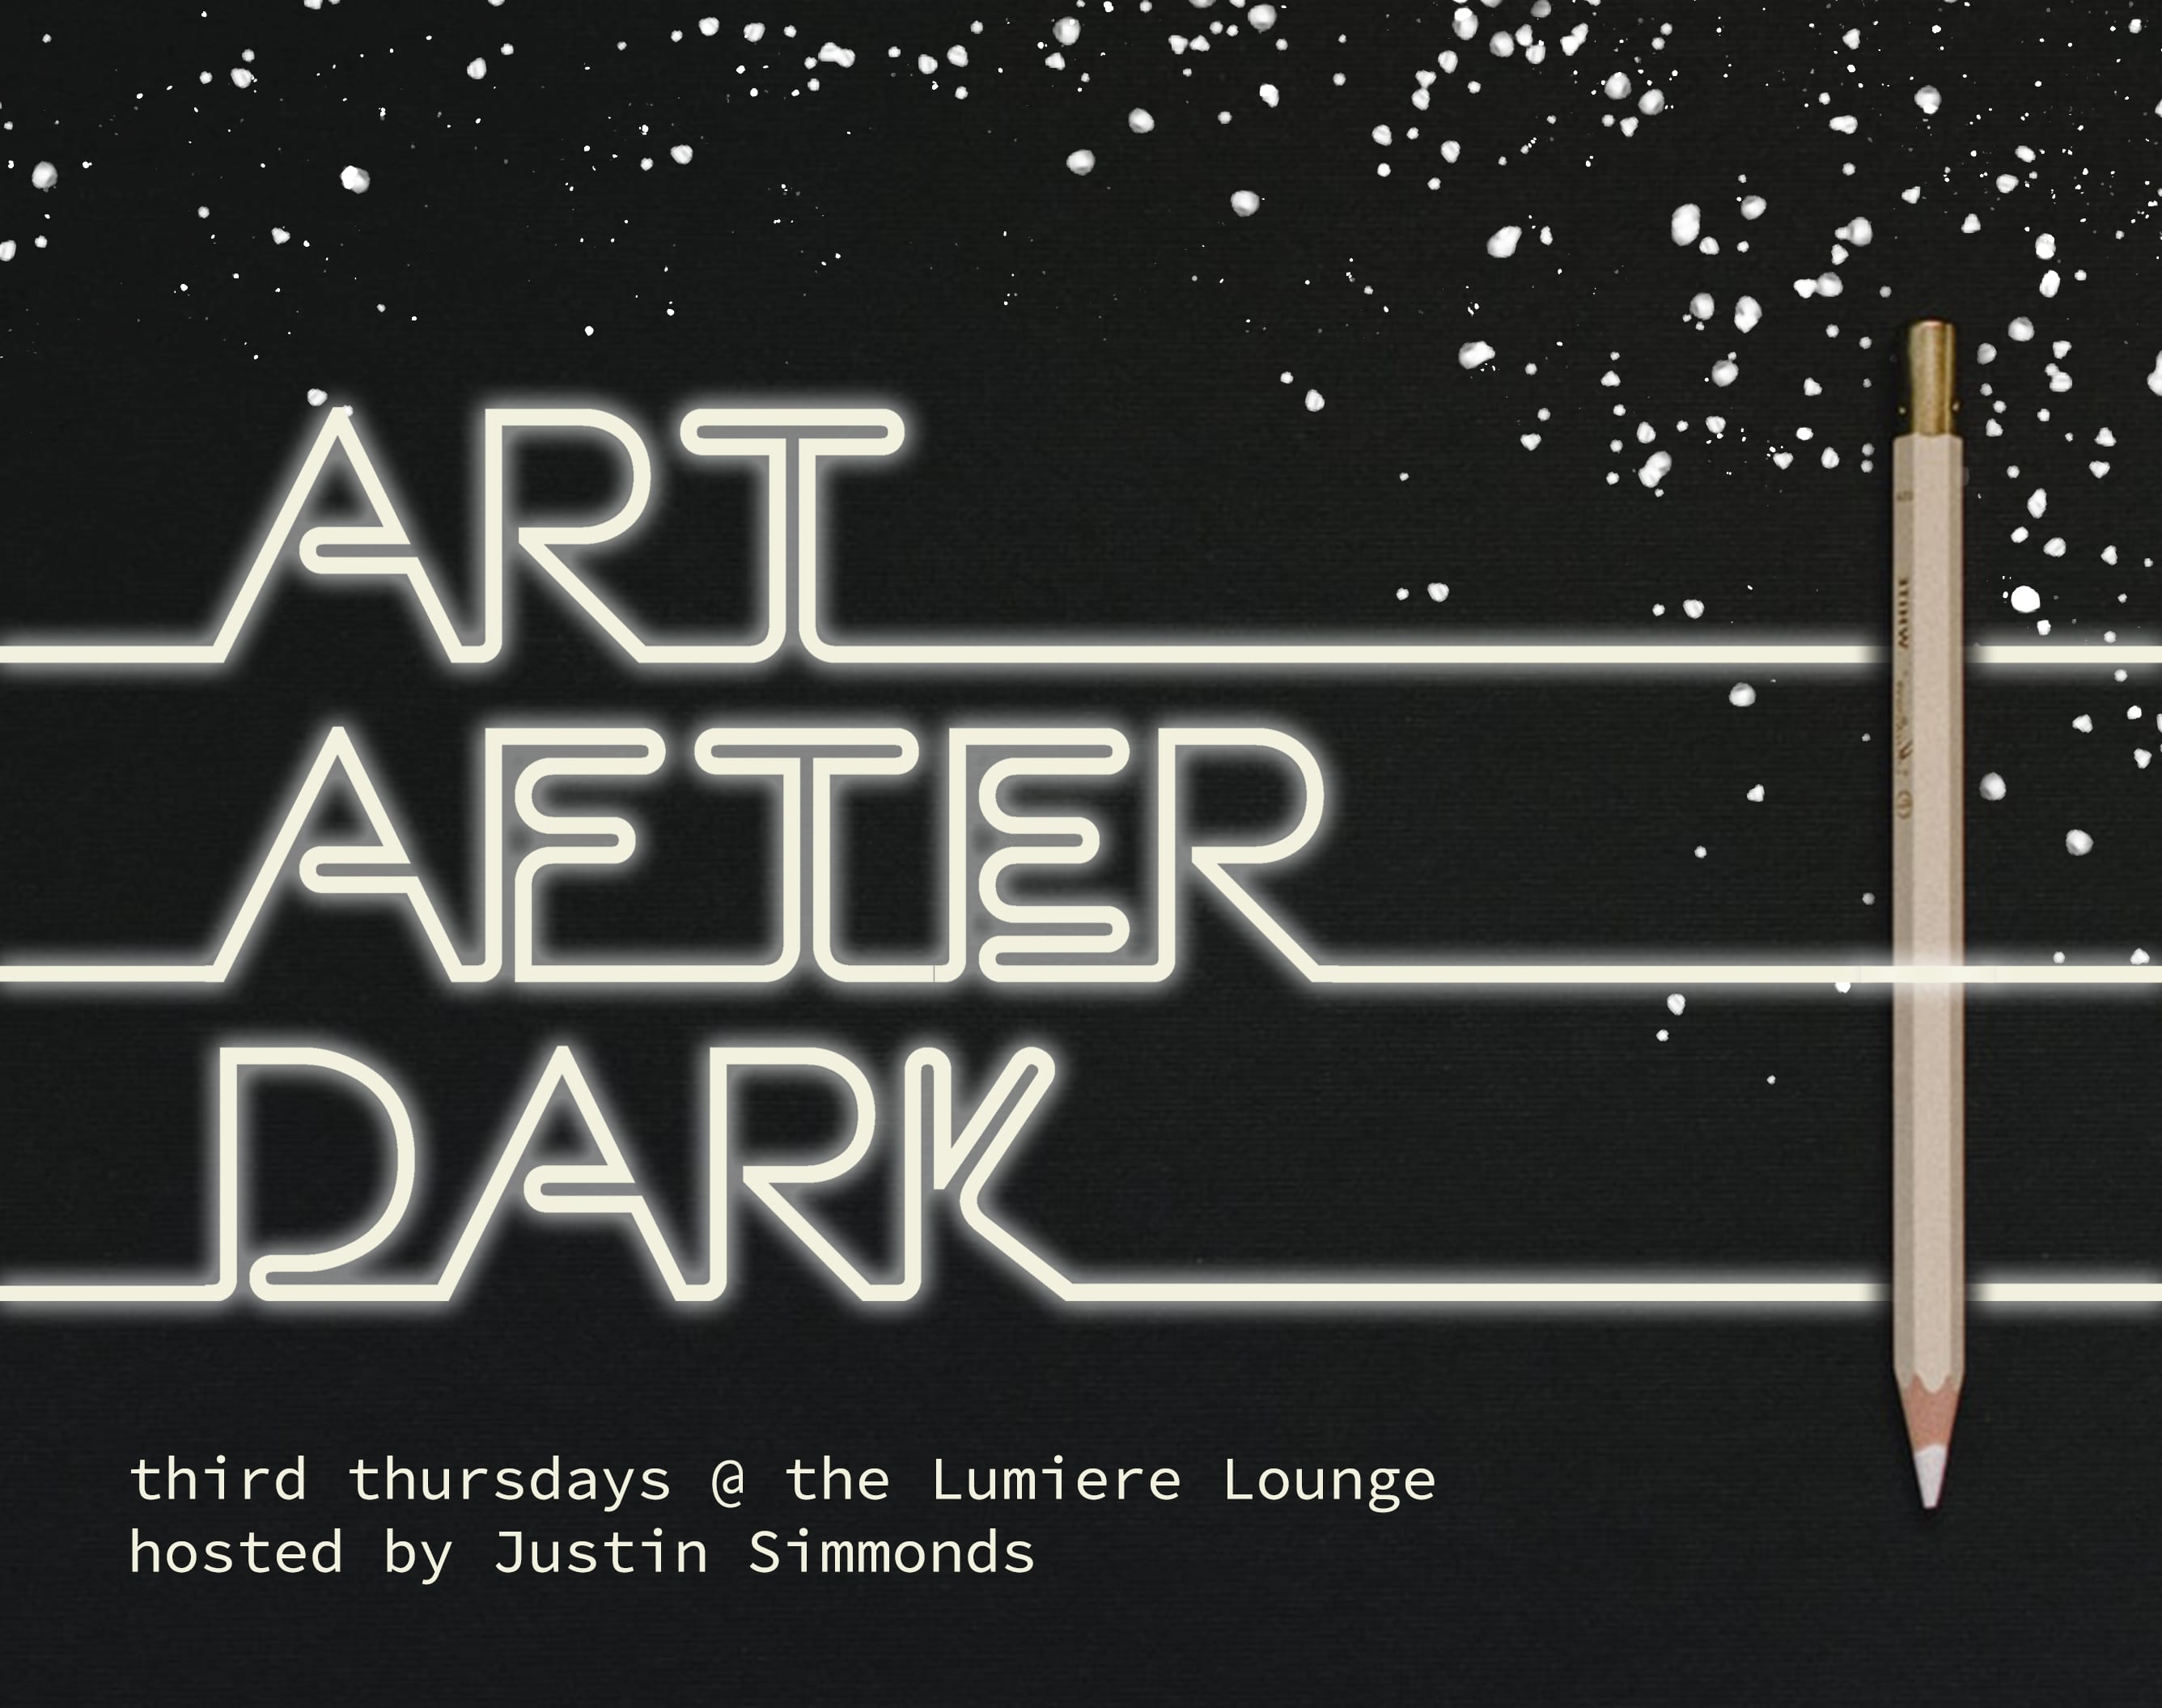 After Drk Art After Dark In The Lumière Lounge Strand Marietta Strand